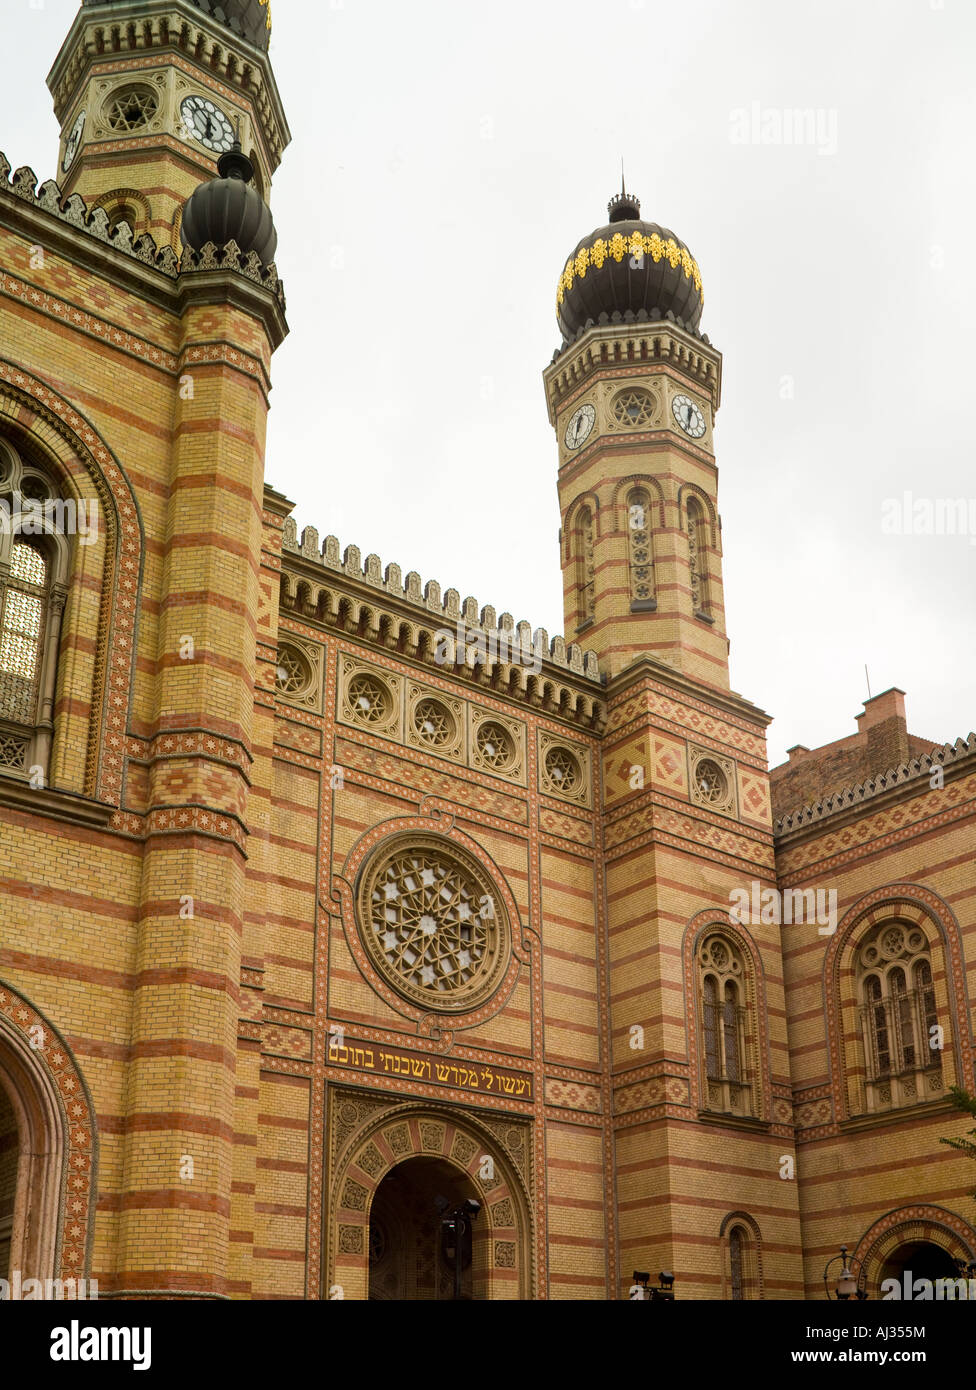 Dohany St Synagogue, Budapest, Hungary Stock Photo: 14606095